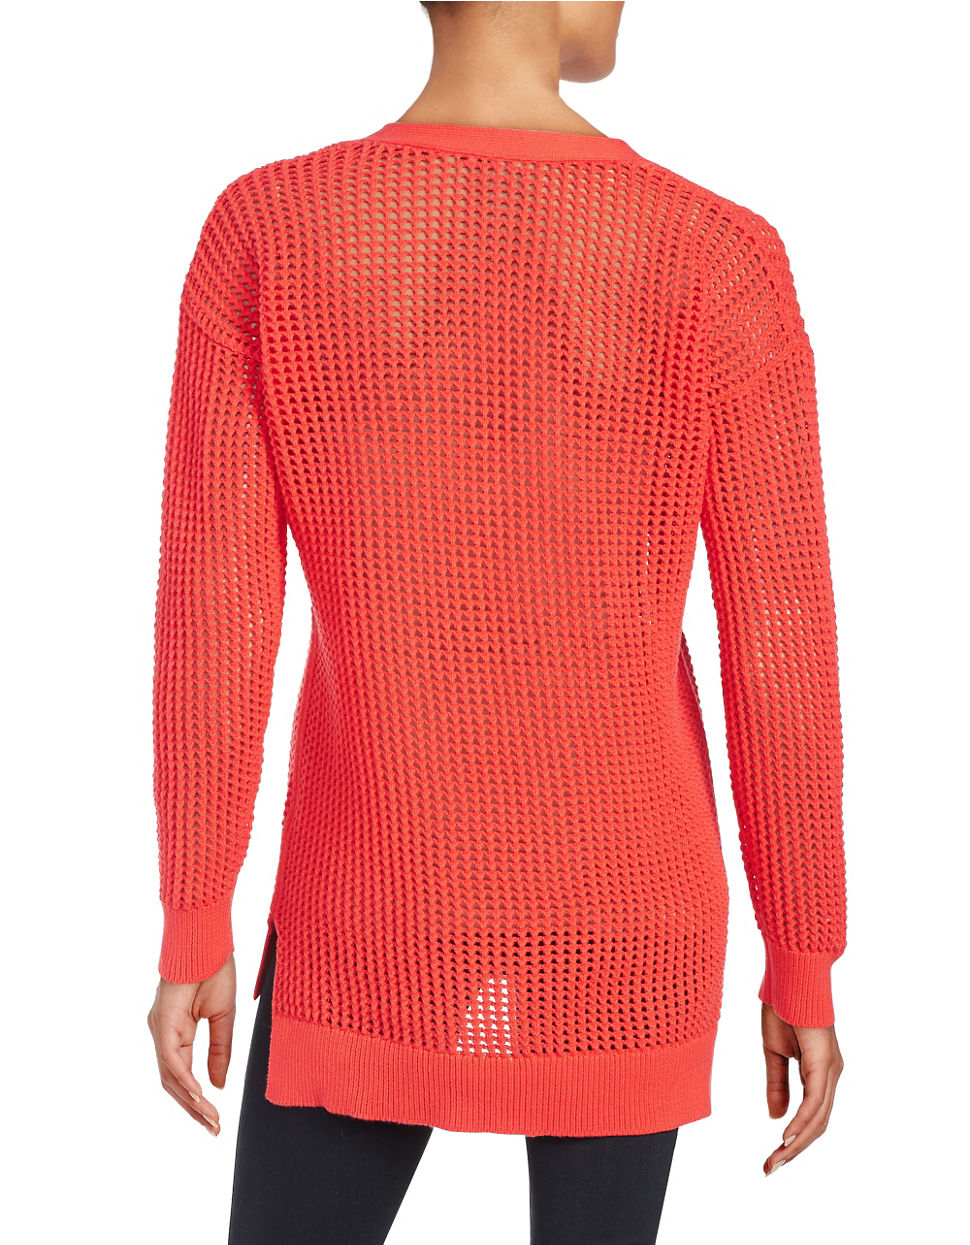 michael michael kors open knit lace up pullover in red lyst. Black Bedroom Furniture Sets. Home Design Ideas